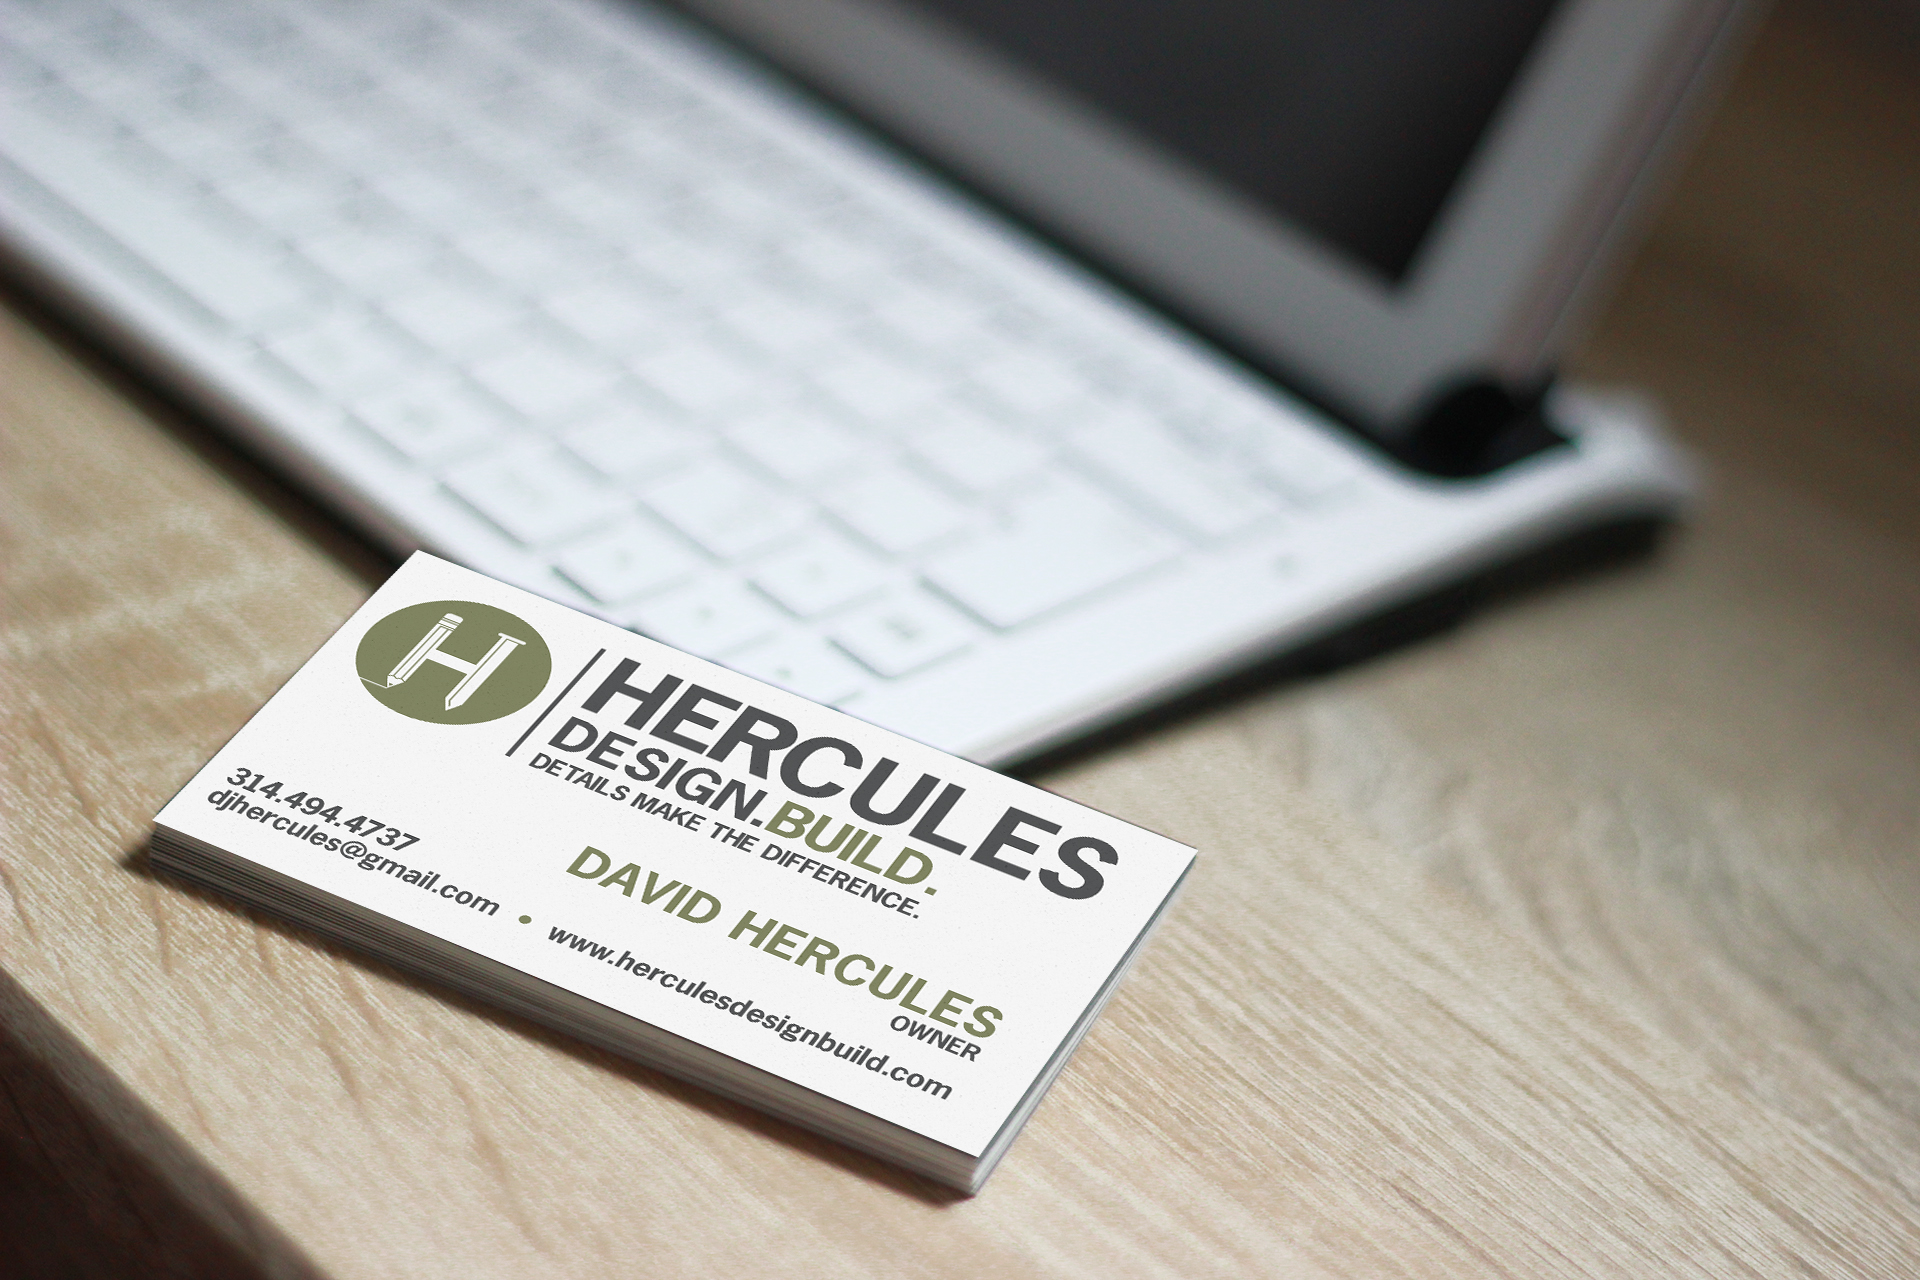 Hercules Business Card